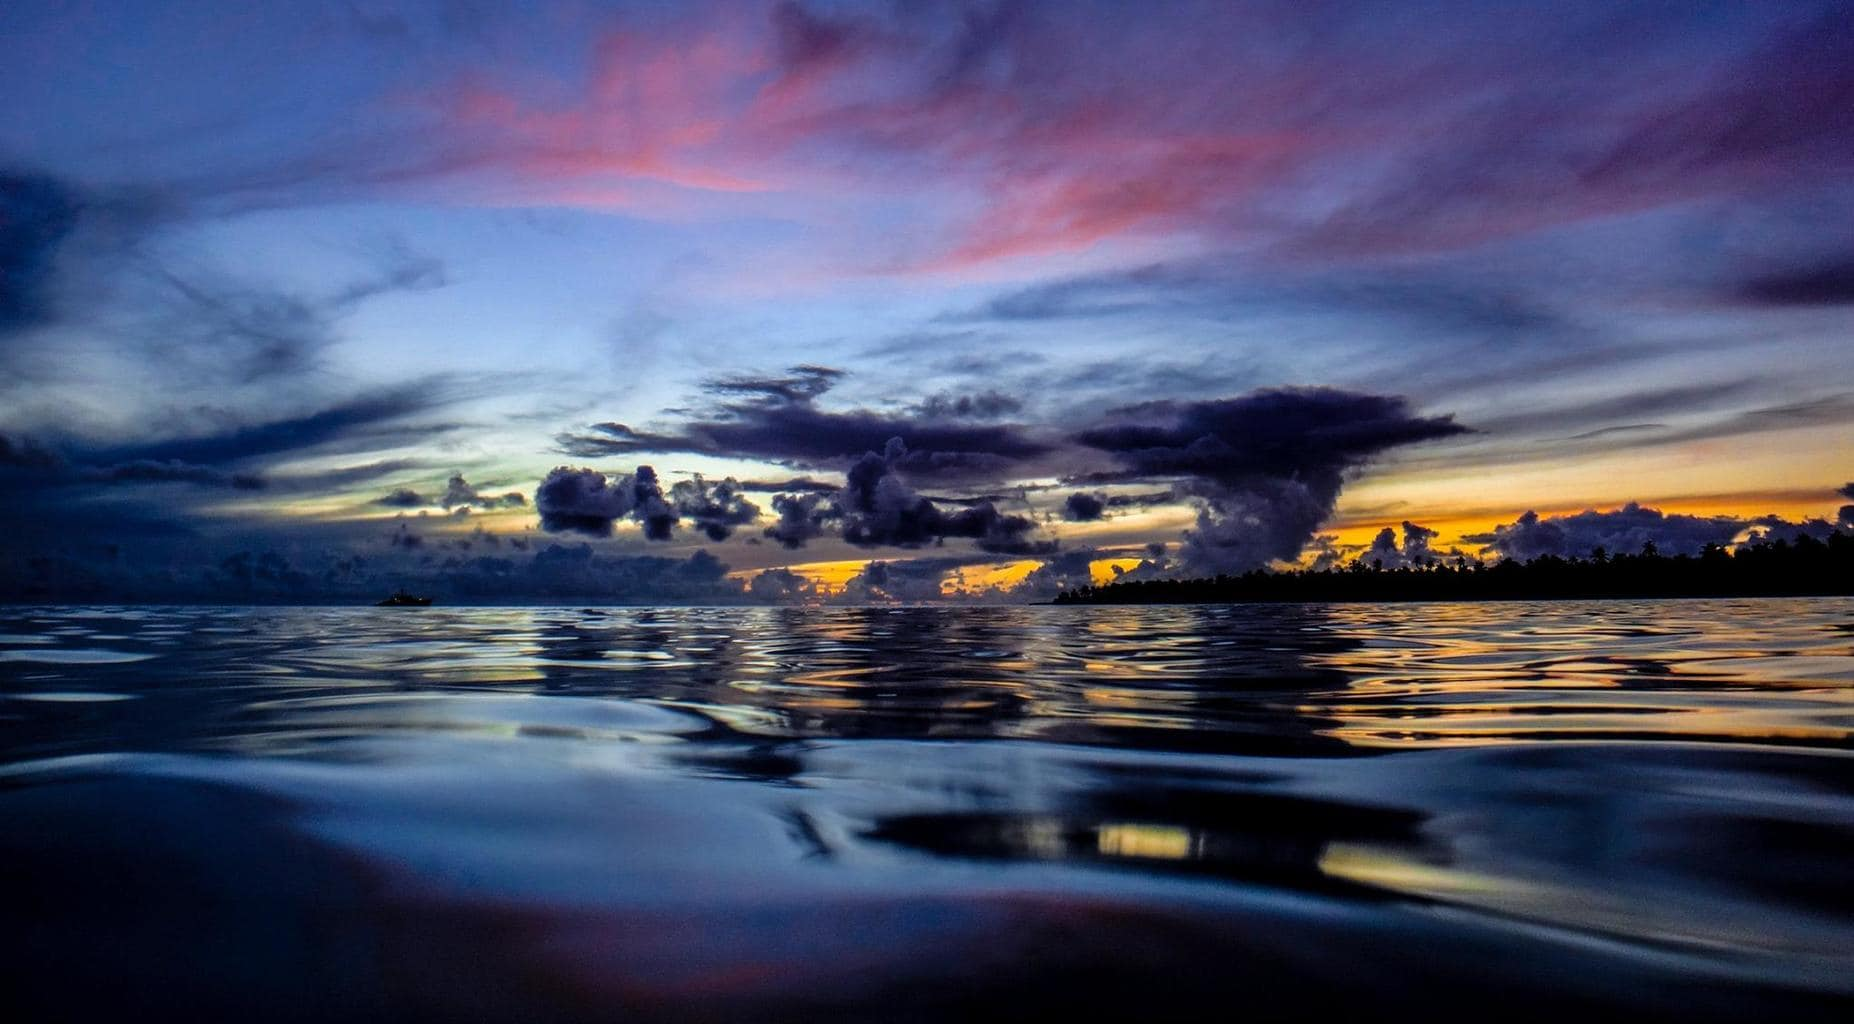 Another beautiful sunset enjoyed from the water on Direction Island, Cocos (Keeling) Islands, Indian Ocean.